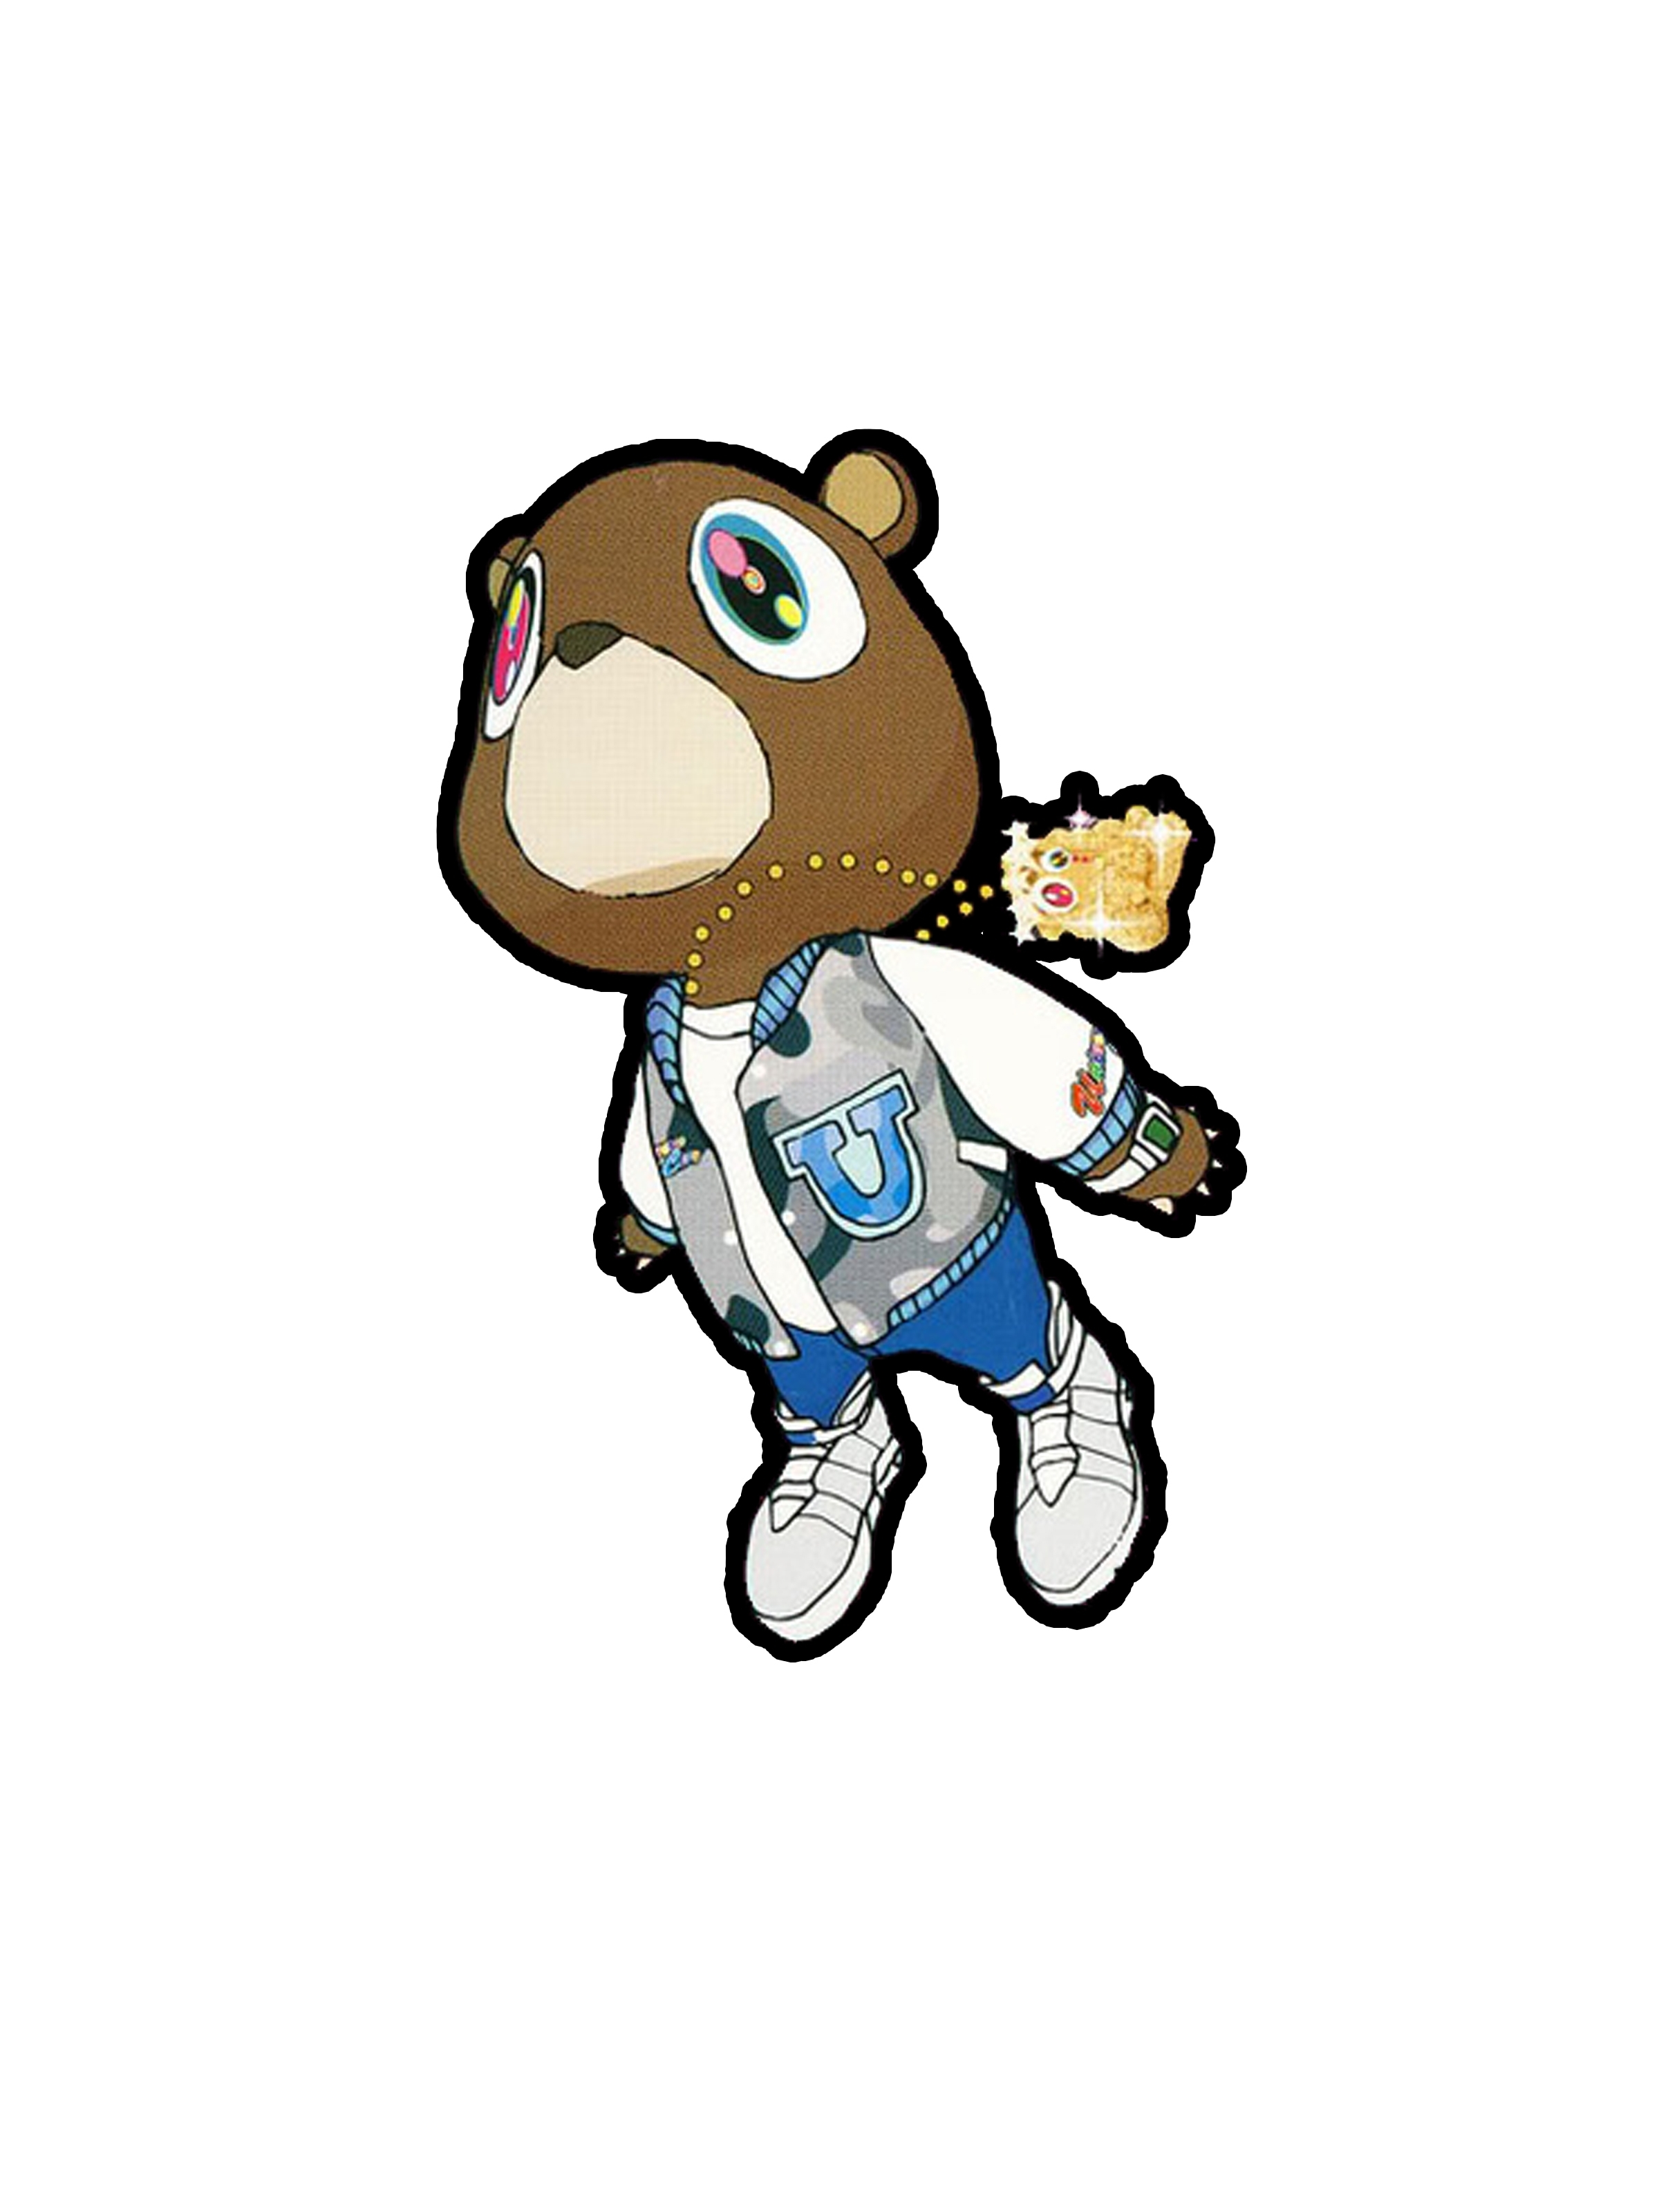 10 Latest Kanye West Bear Drawing FULL HD 1920×1080 For PC Desktop